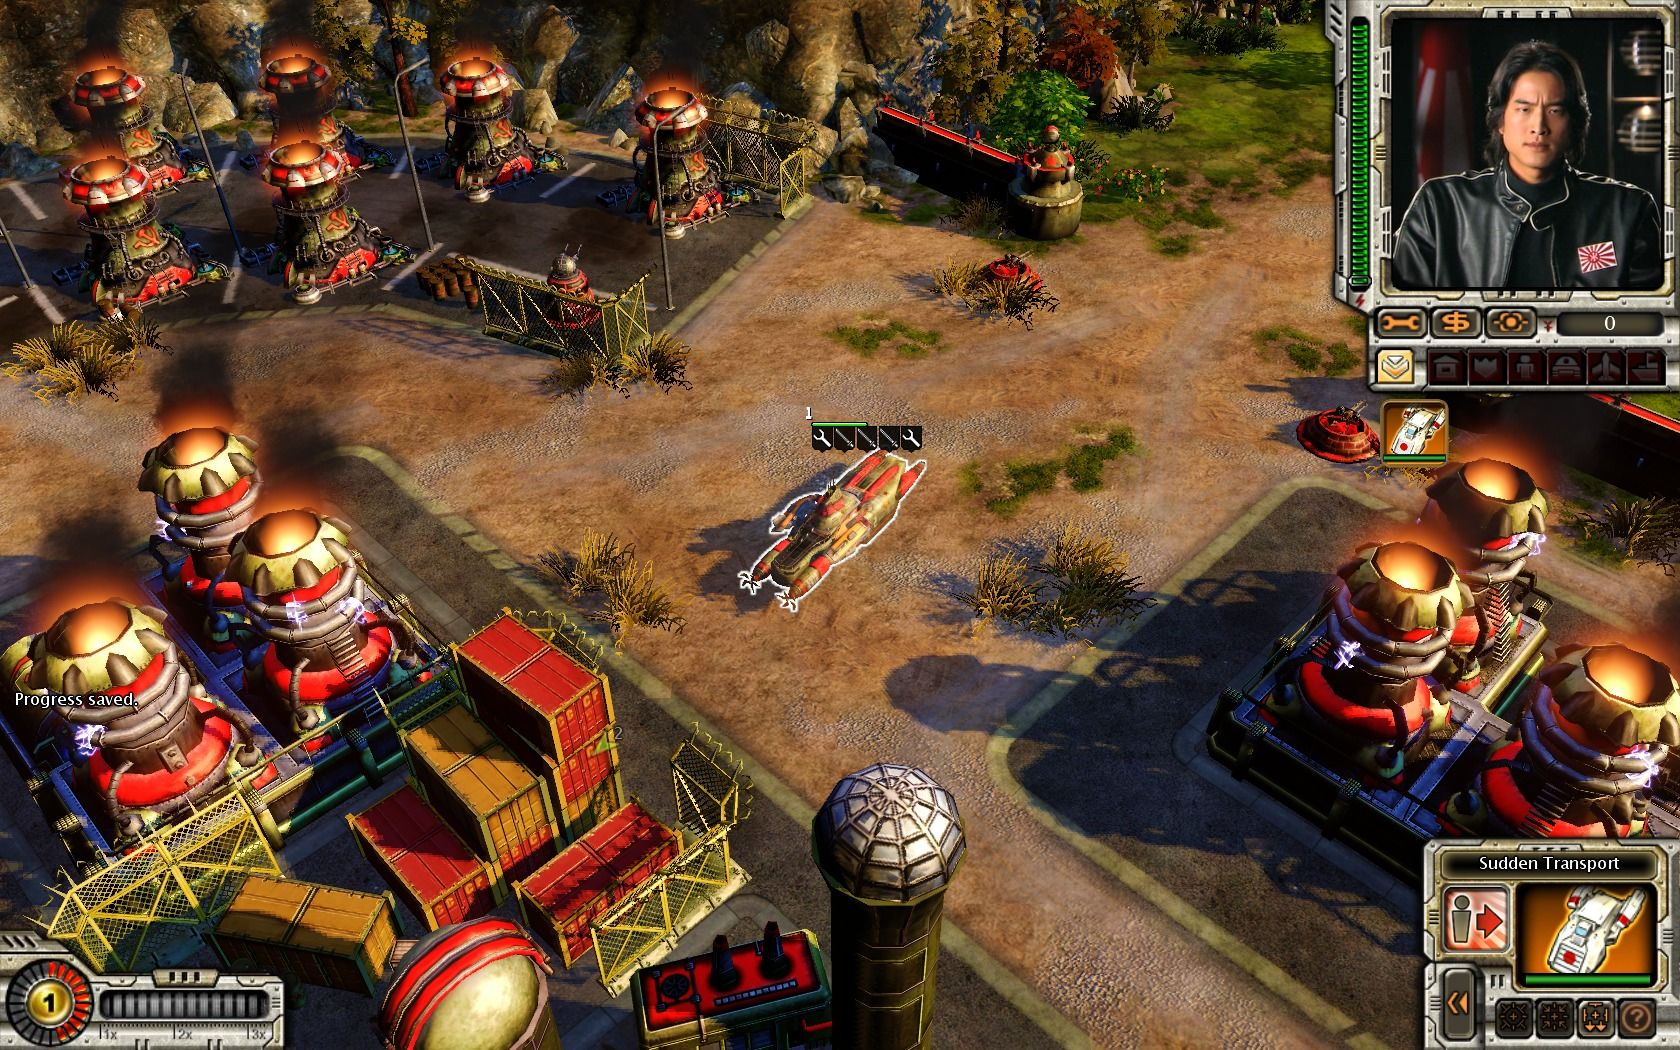 Command & Conquer: Red Alert 3 - Uprising Windows Imperial transport can take shape of any enemy mechanical unit... but somehow I doubt Soviet forces wouldn't find this suspicious.